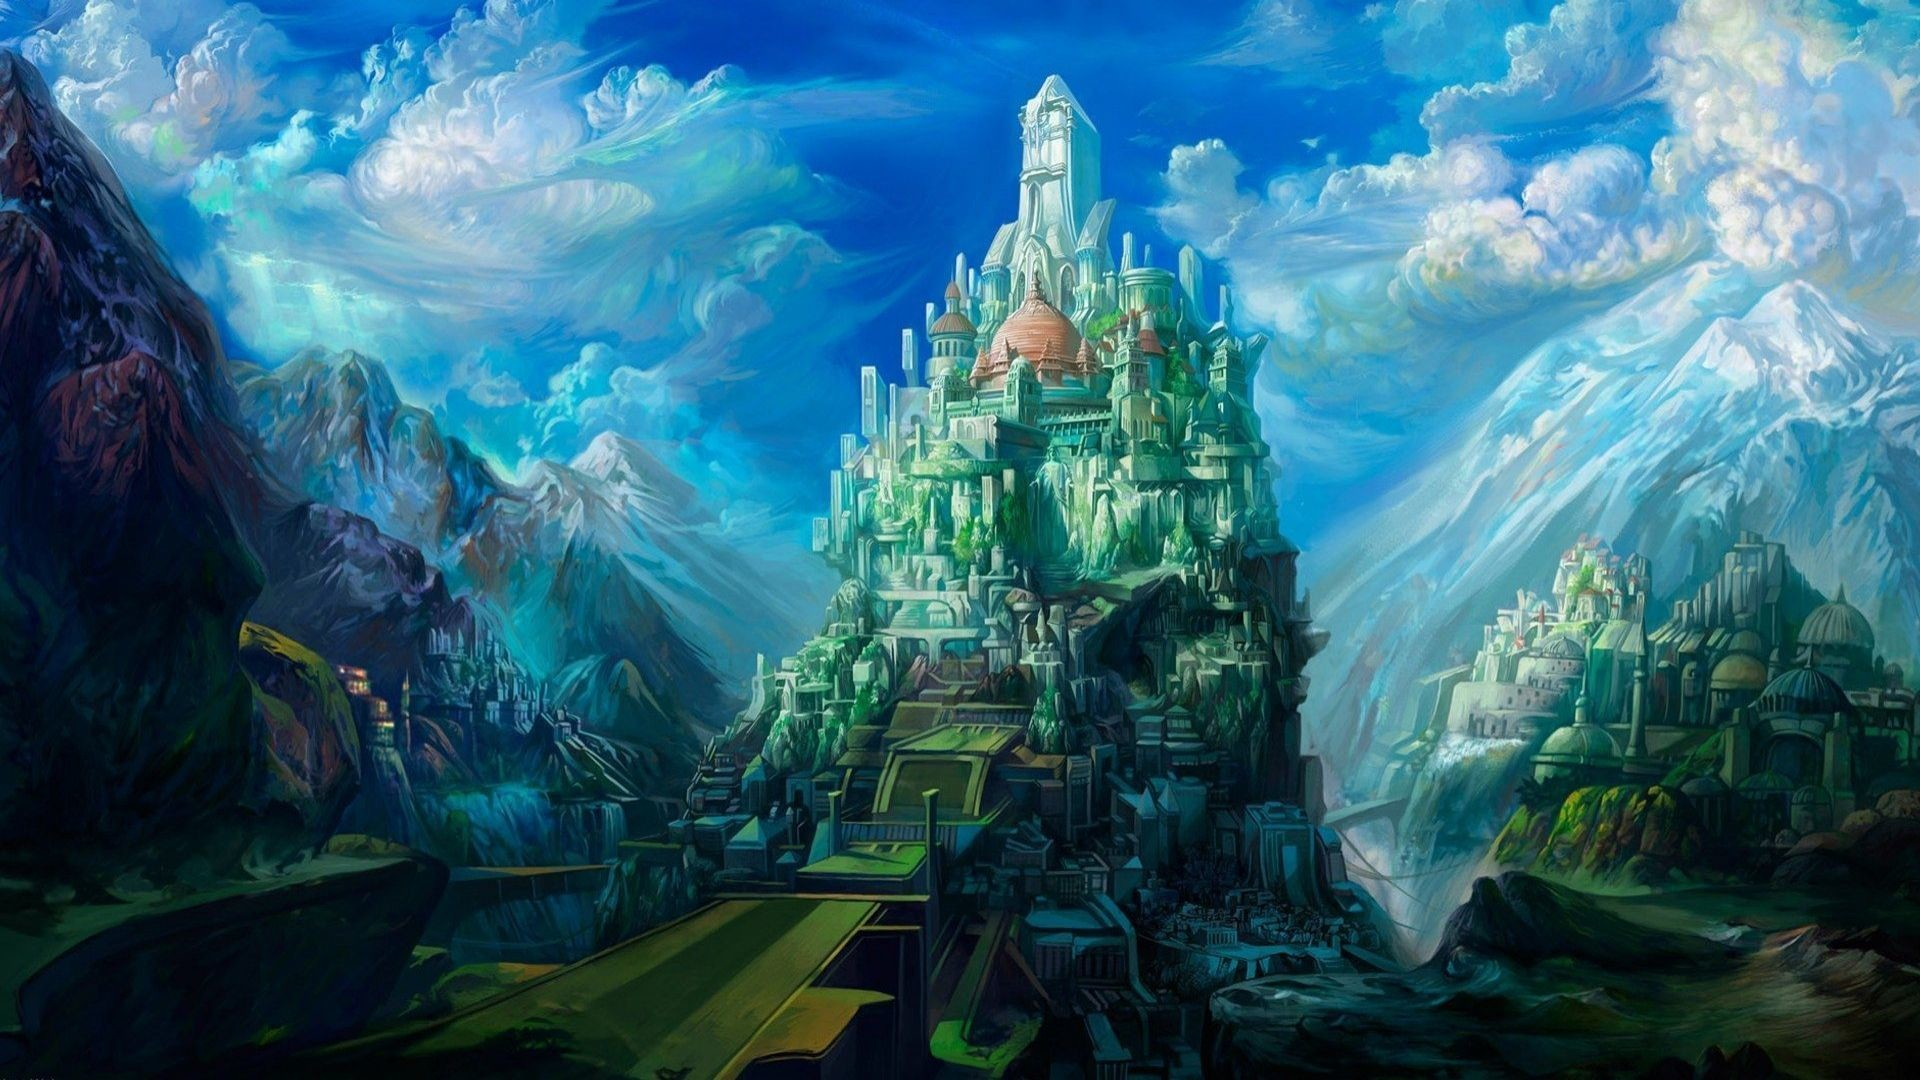 Castle HD Wallpapers Backgrounds Wallpaper   HD Wallpapers   Pinterest    Castles, Wallpaper and Wallpaper backgrounds